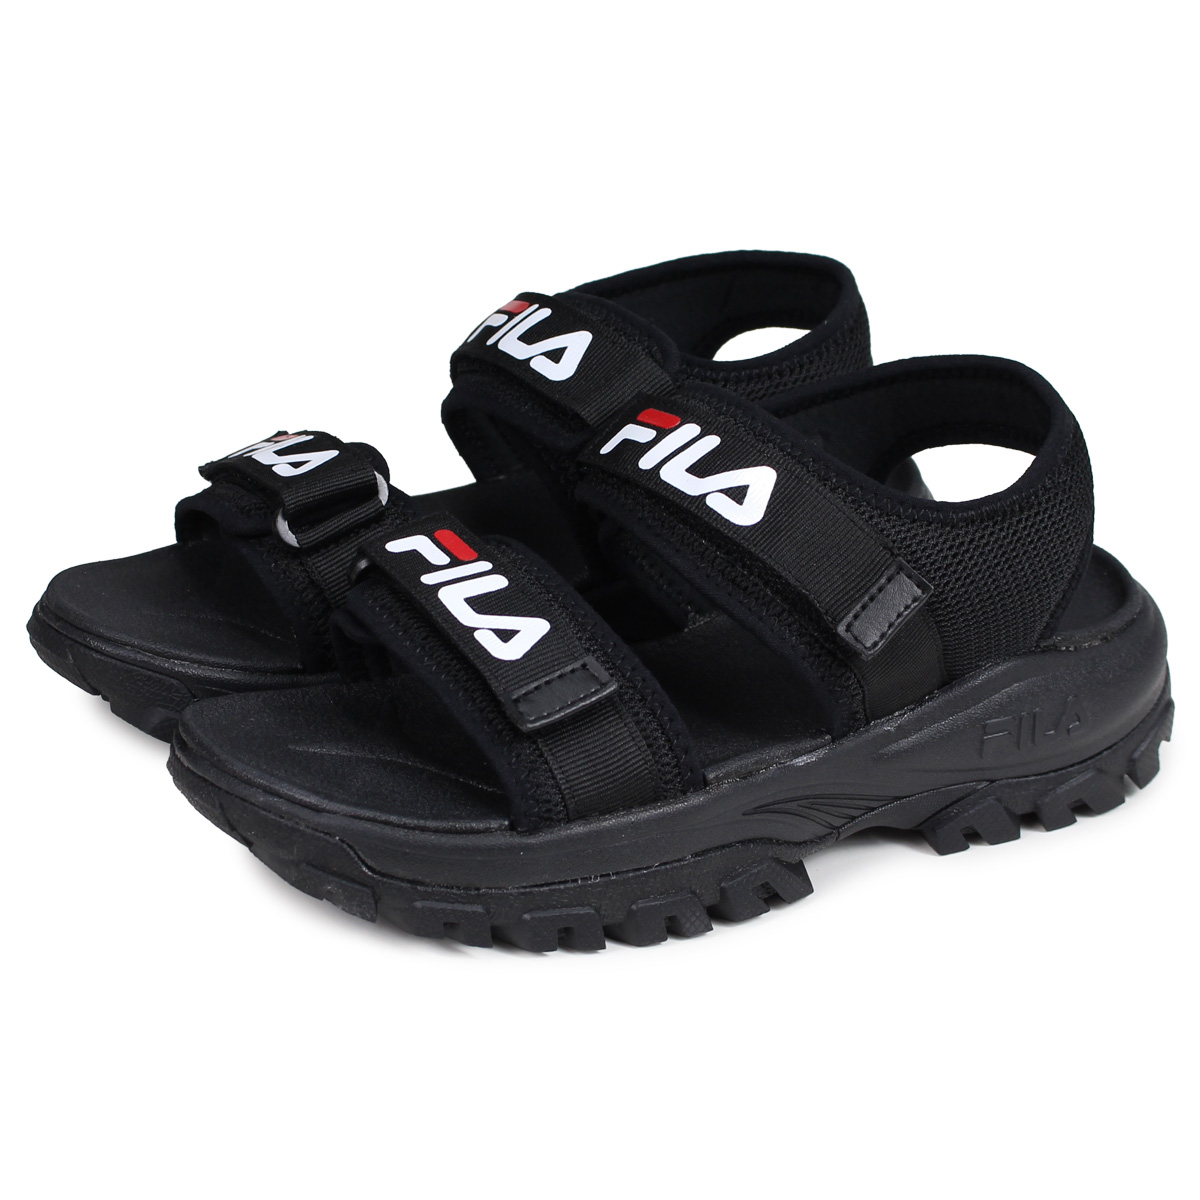 e2d3e5cf31 FILA RAY TRACER SD Fila tracer sandals sports sandals men gap Dis thickness  bottom black black FS1SIB2011X-BBK [195]